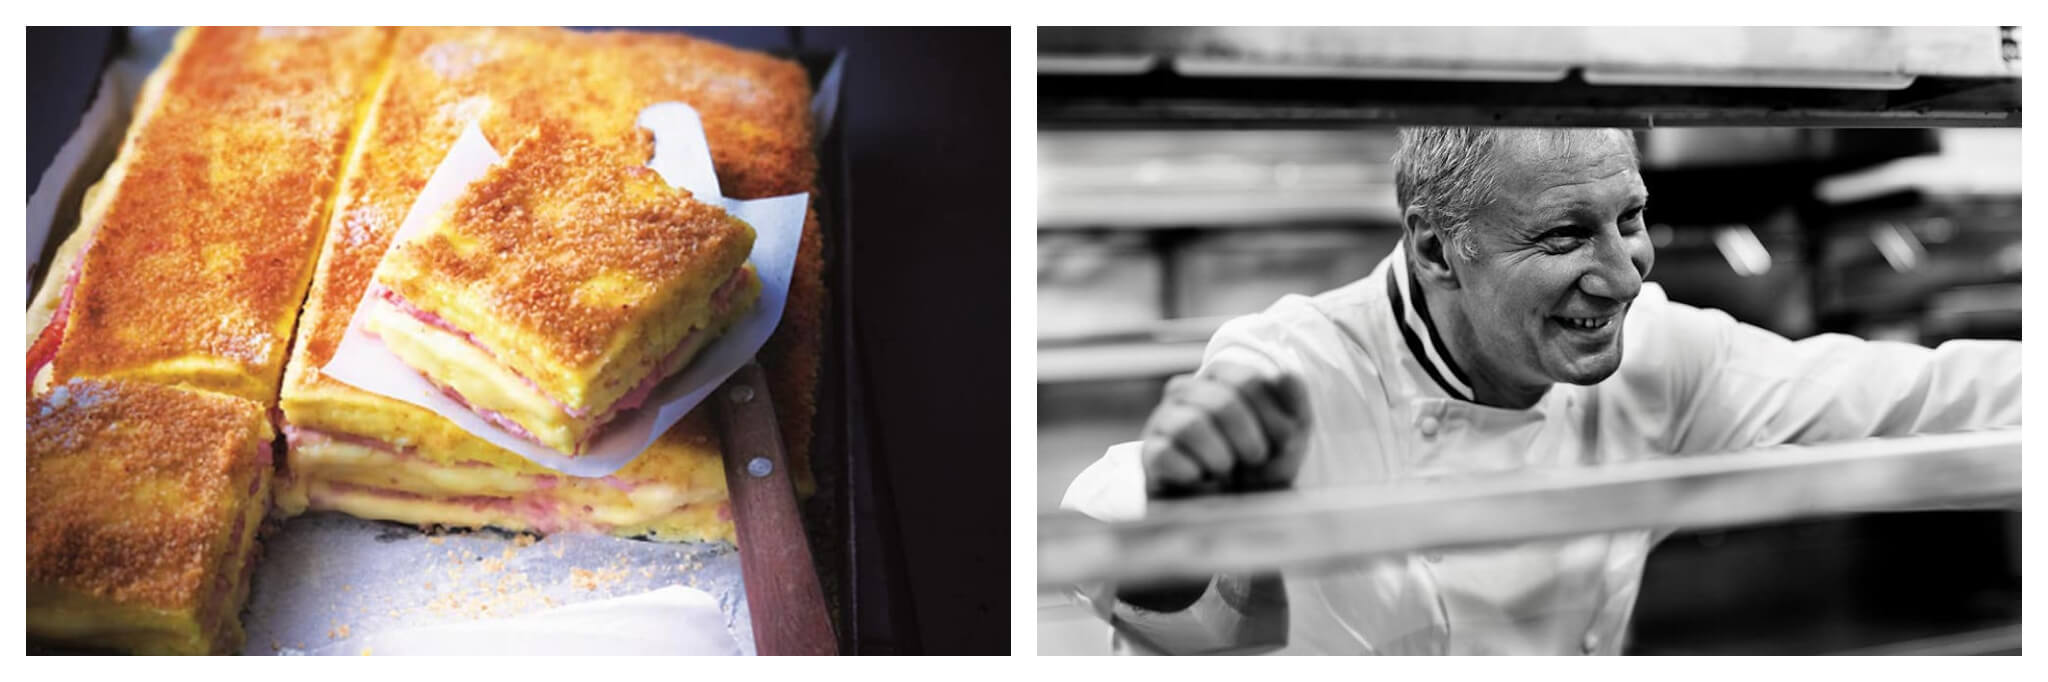 Left: A slice of Eric Frechon's delicious ham and cheese croque monsieur has been sliced and prepared to be served; underneath it are a knife and more croque monsieurs. Right: A black and white photo of Michelin-Star chef Eric Frechon, smiling in a restaurant kitchen.